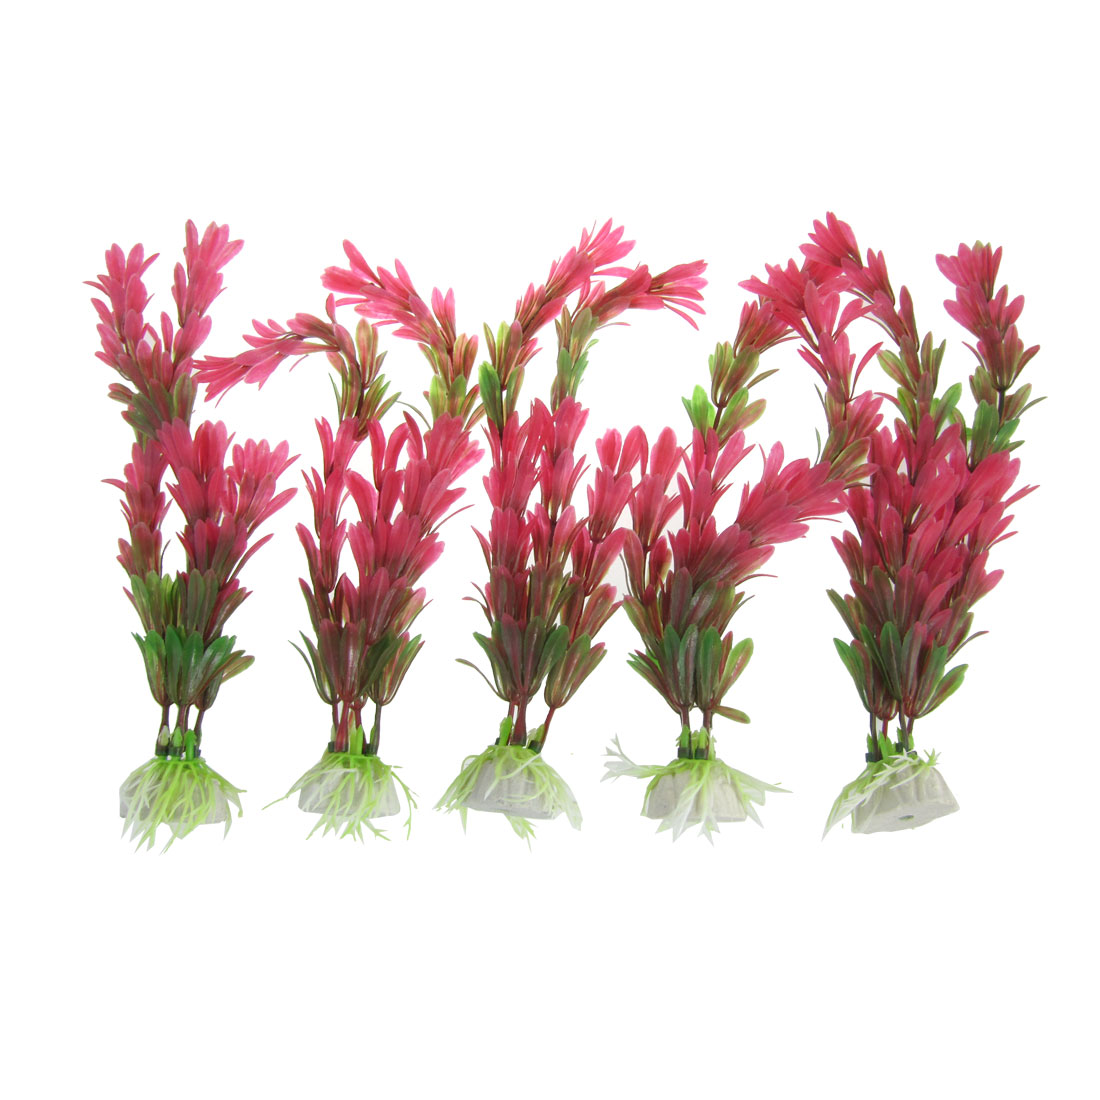 5 Pcs Red Green Plastic Emulational Grass Plant for Fish Tank